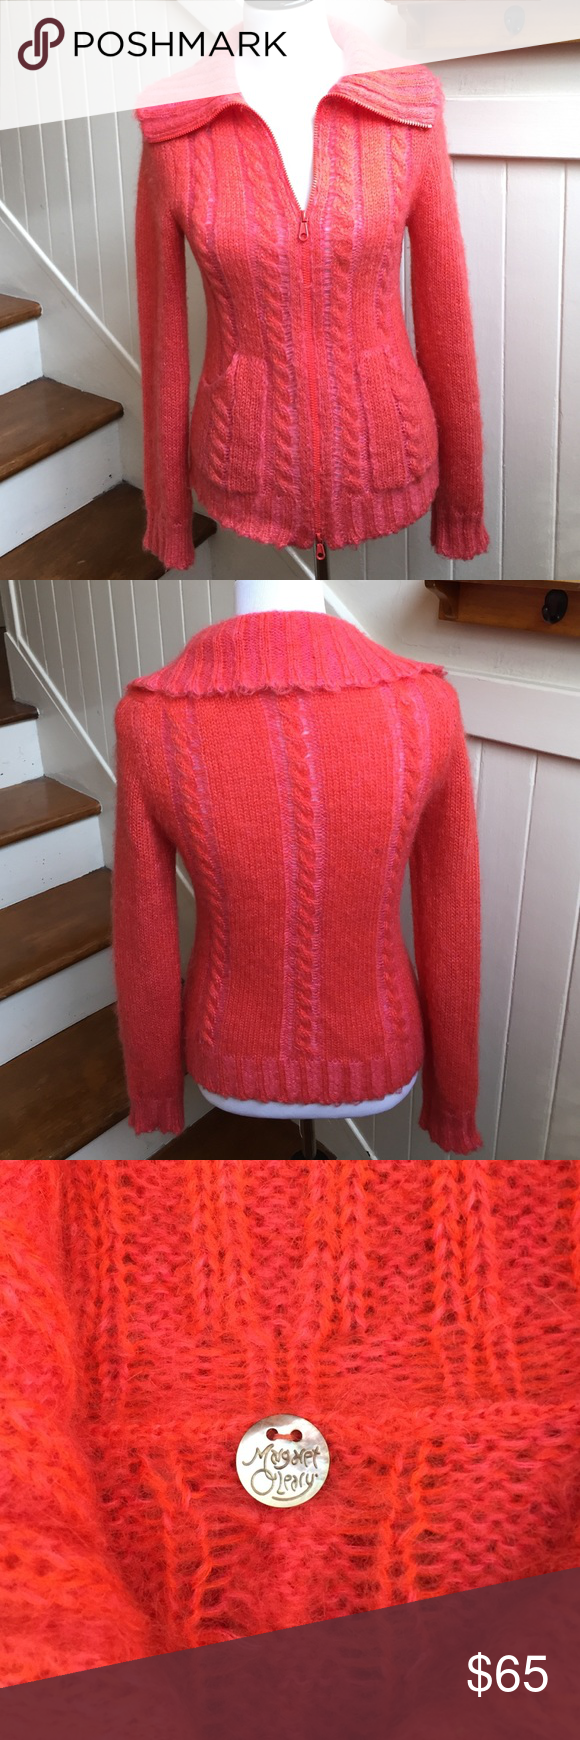 Margaret O'Leary Cable Knit Sweater Jacket San Francisco Based ...